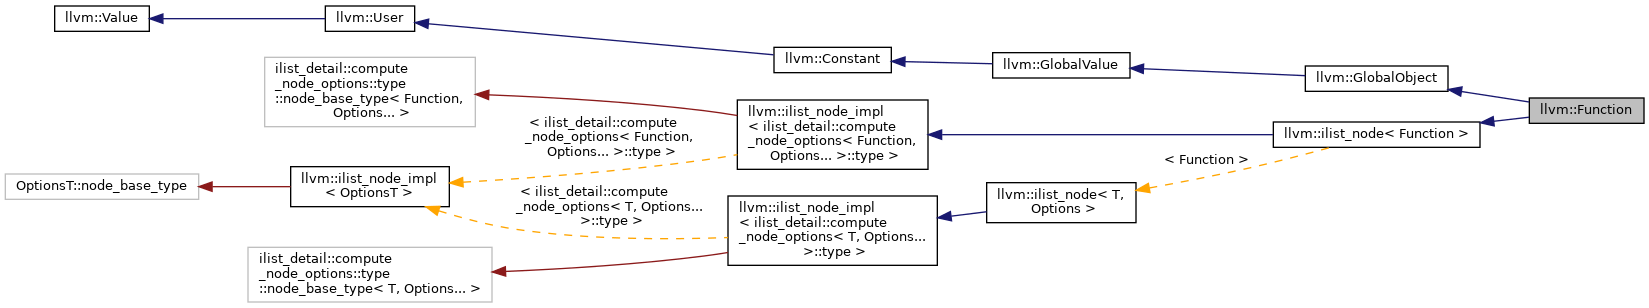 Inheritance graph